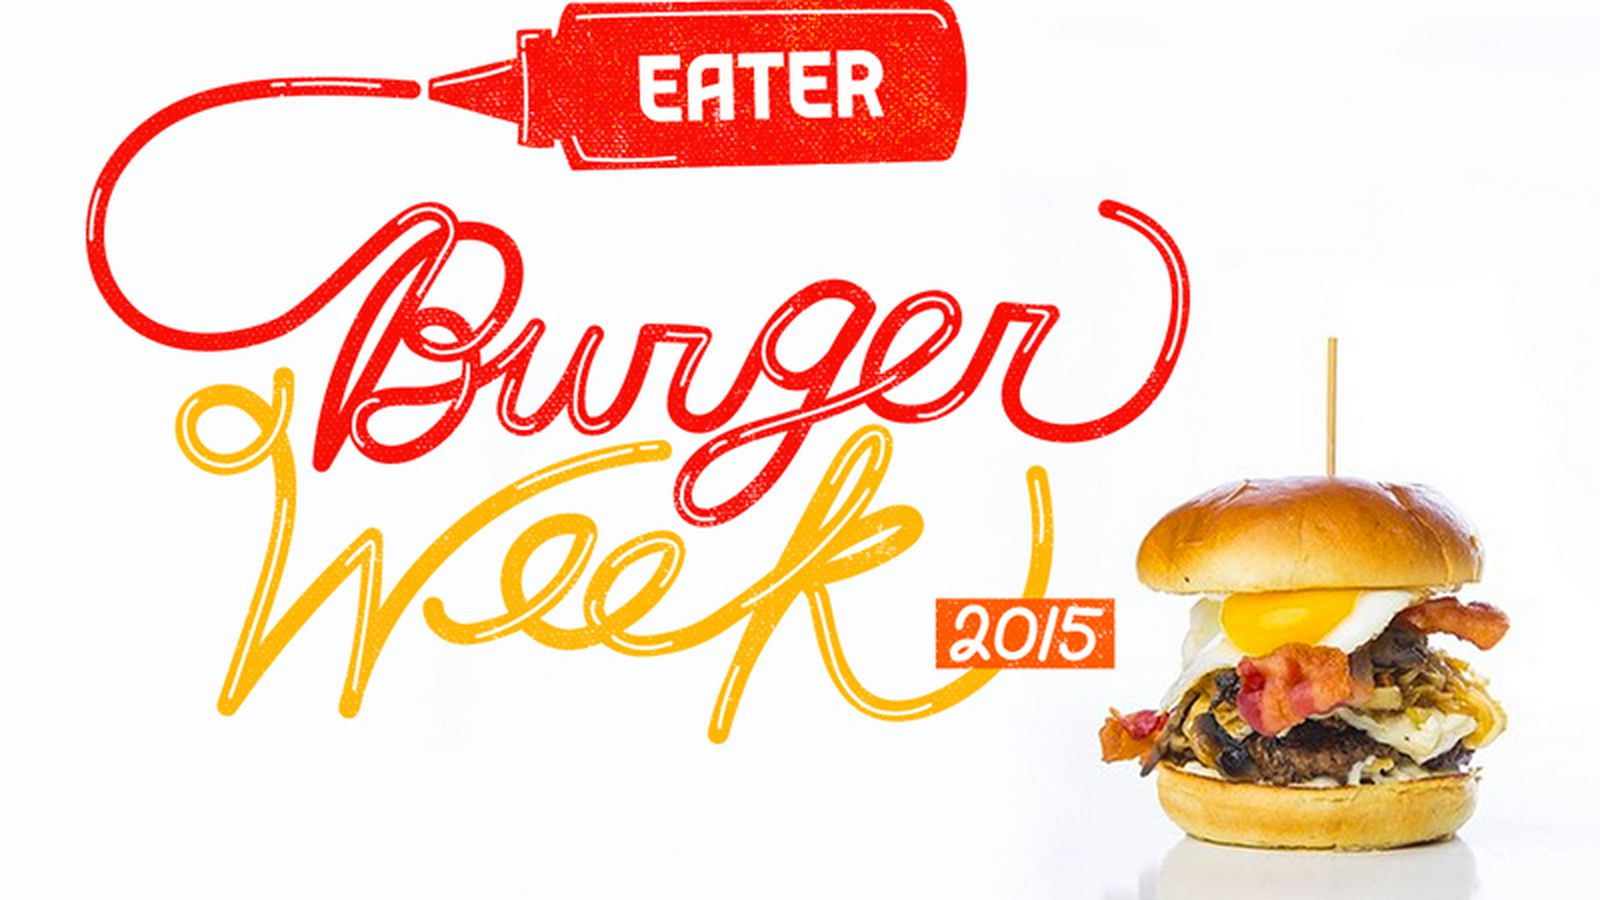 The Hottest Burgers in North America, 2015